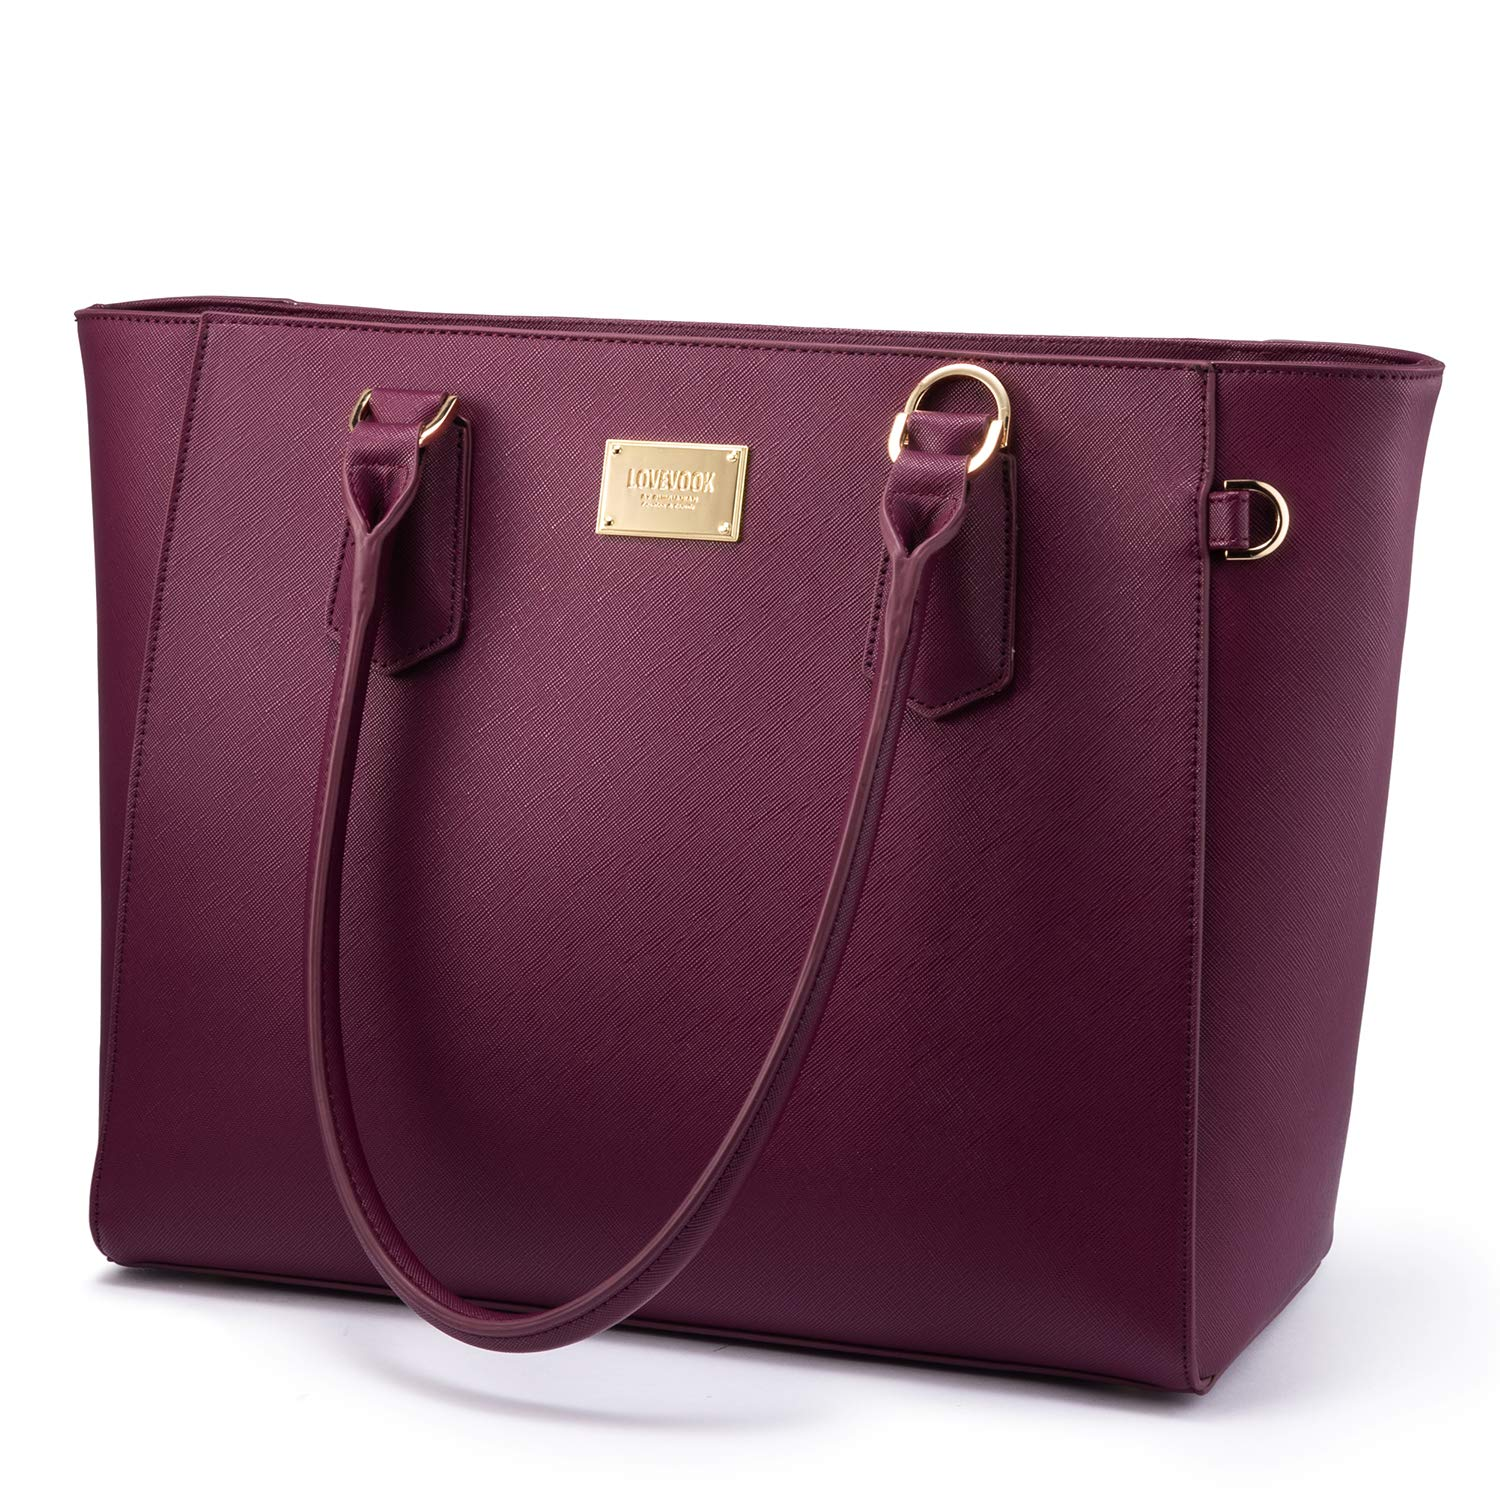 LOVEVOOK Laptop Bag for Women Leather Computer